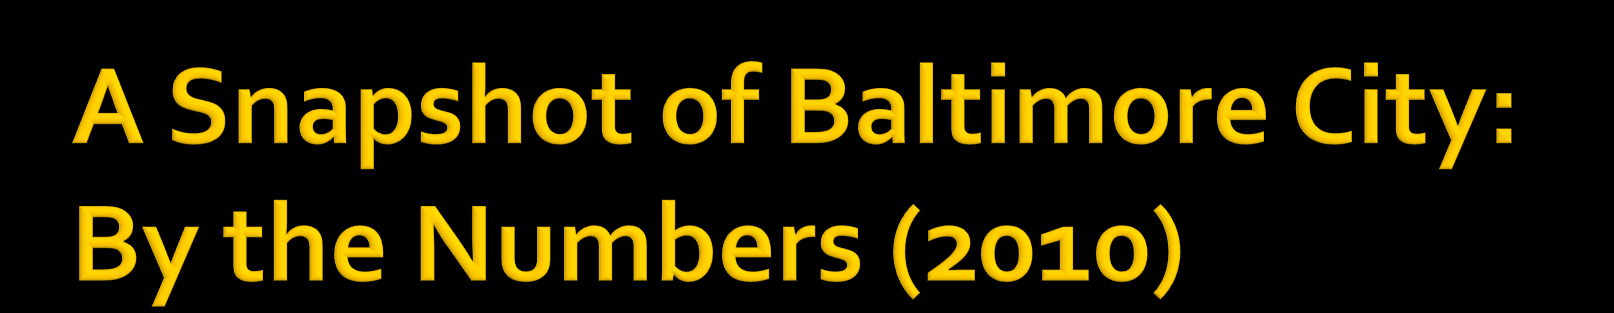 Characteristic Baltimore City Maryland Total Population 620,961 (10.8%) 5,773,552 White 29.6% 58.2% Black 63.